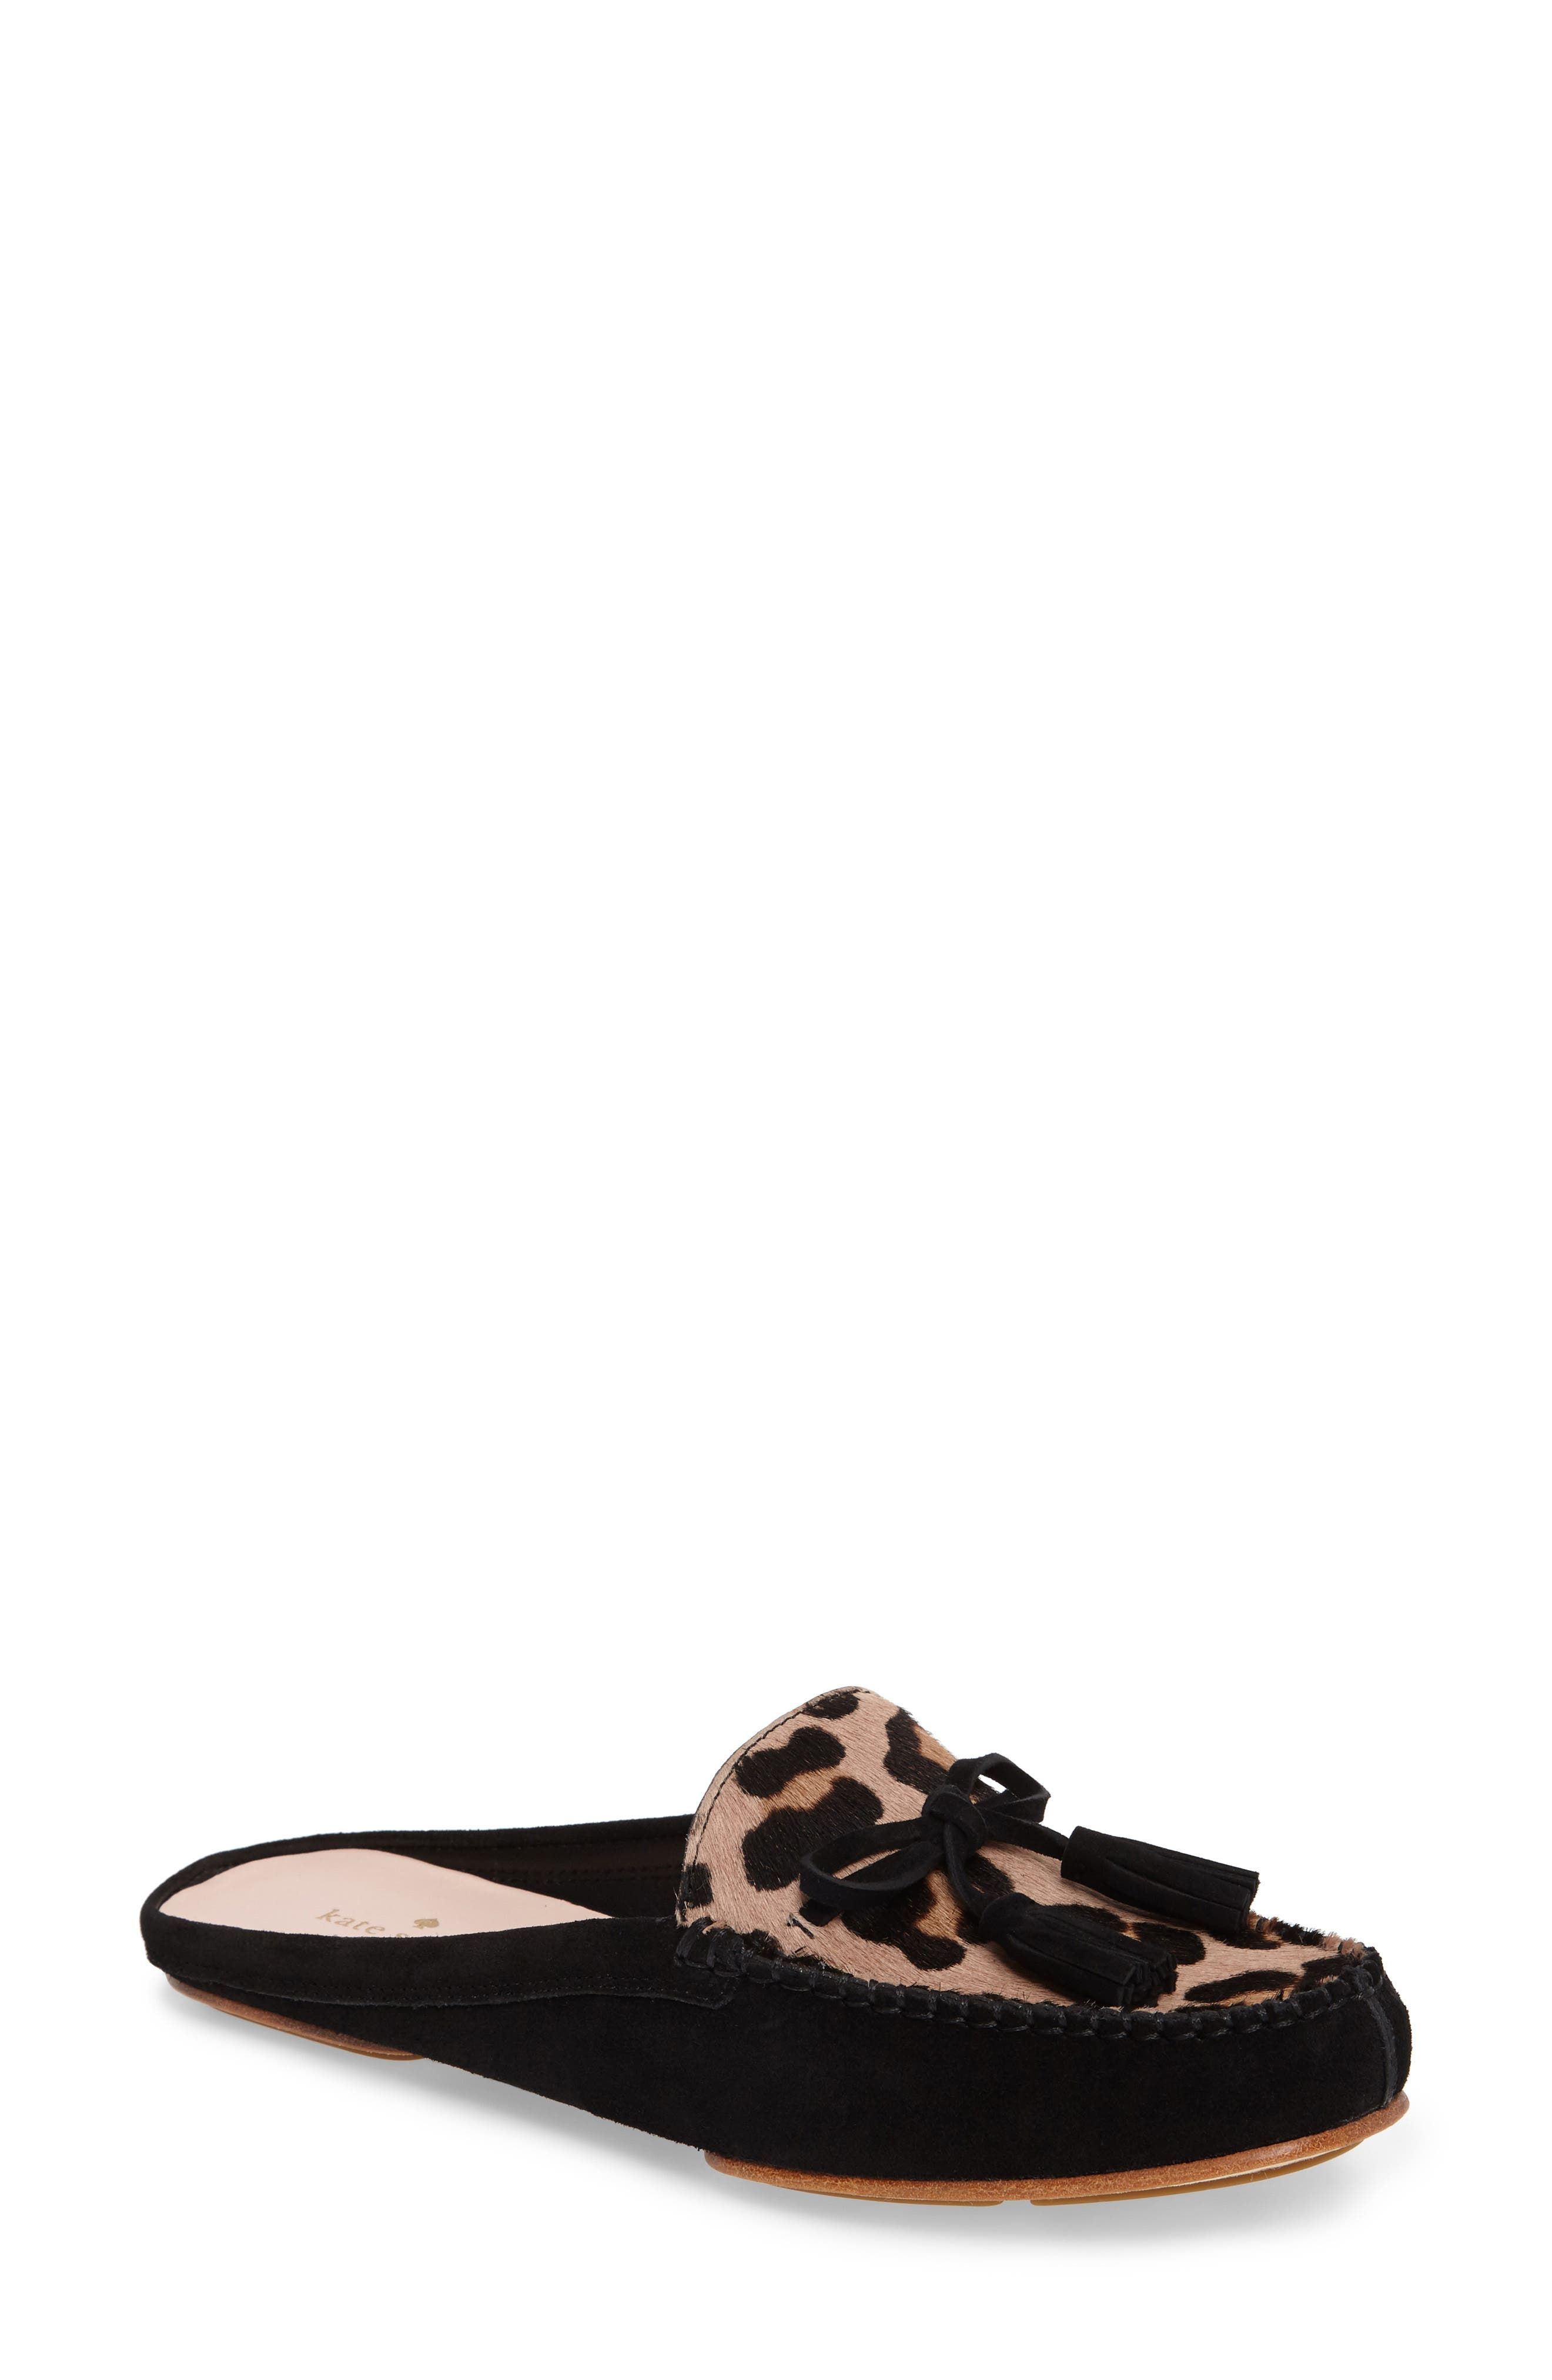 matilda loafer mule,                         Main,                         color, Blush/ Fawn Leopard Black